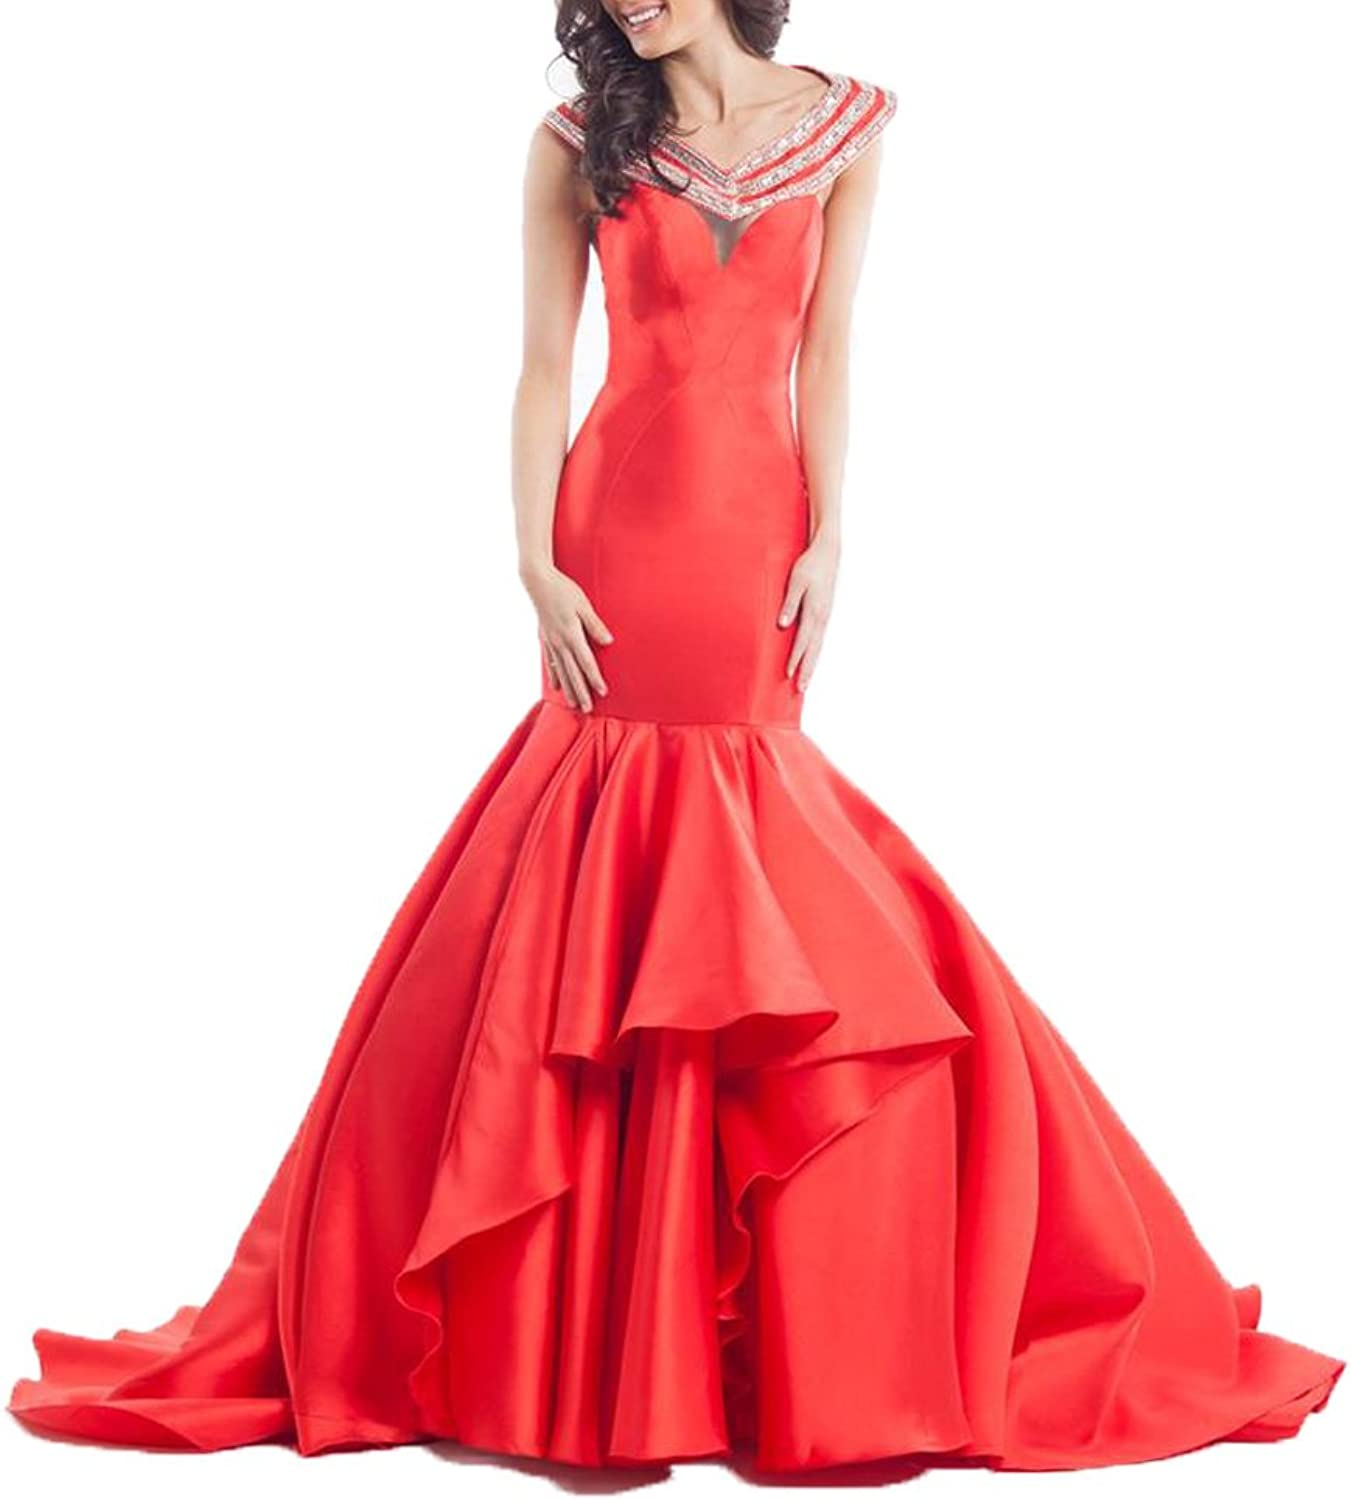 Ellenhouse Beaded Long Halter Pageant Evening Dress Backless Prom Gowns EL088